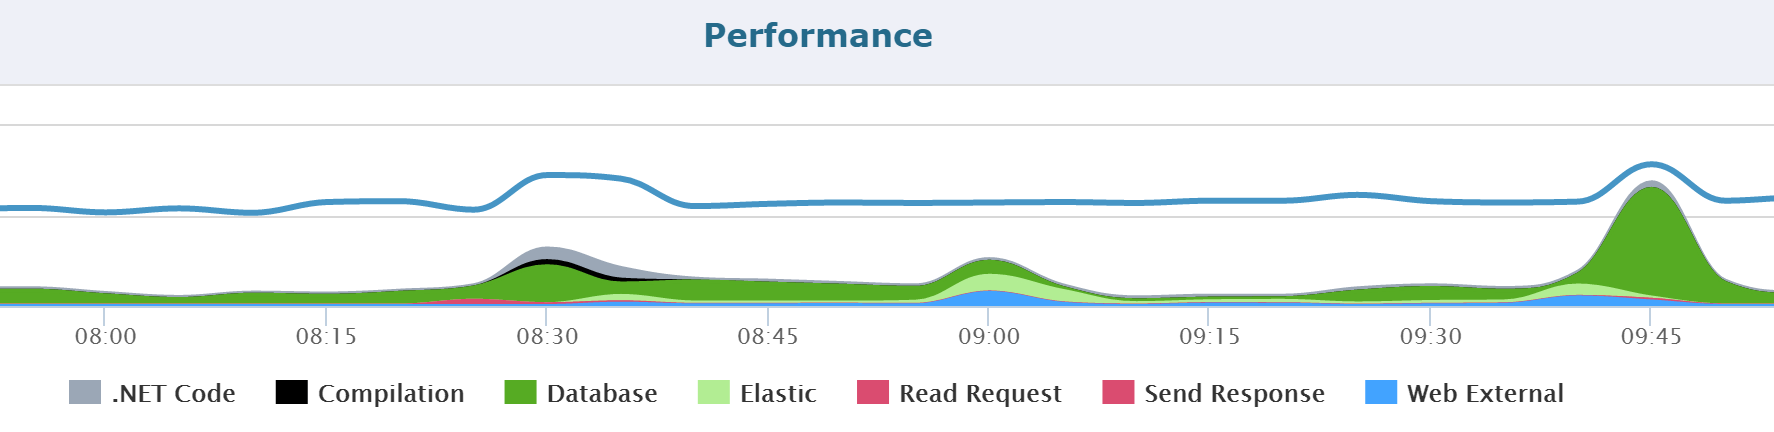 Retrace Performance View by Application Dependencies